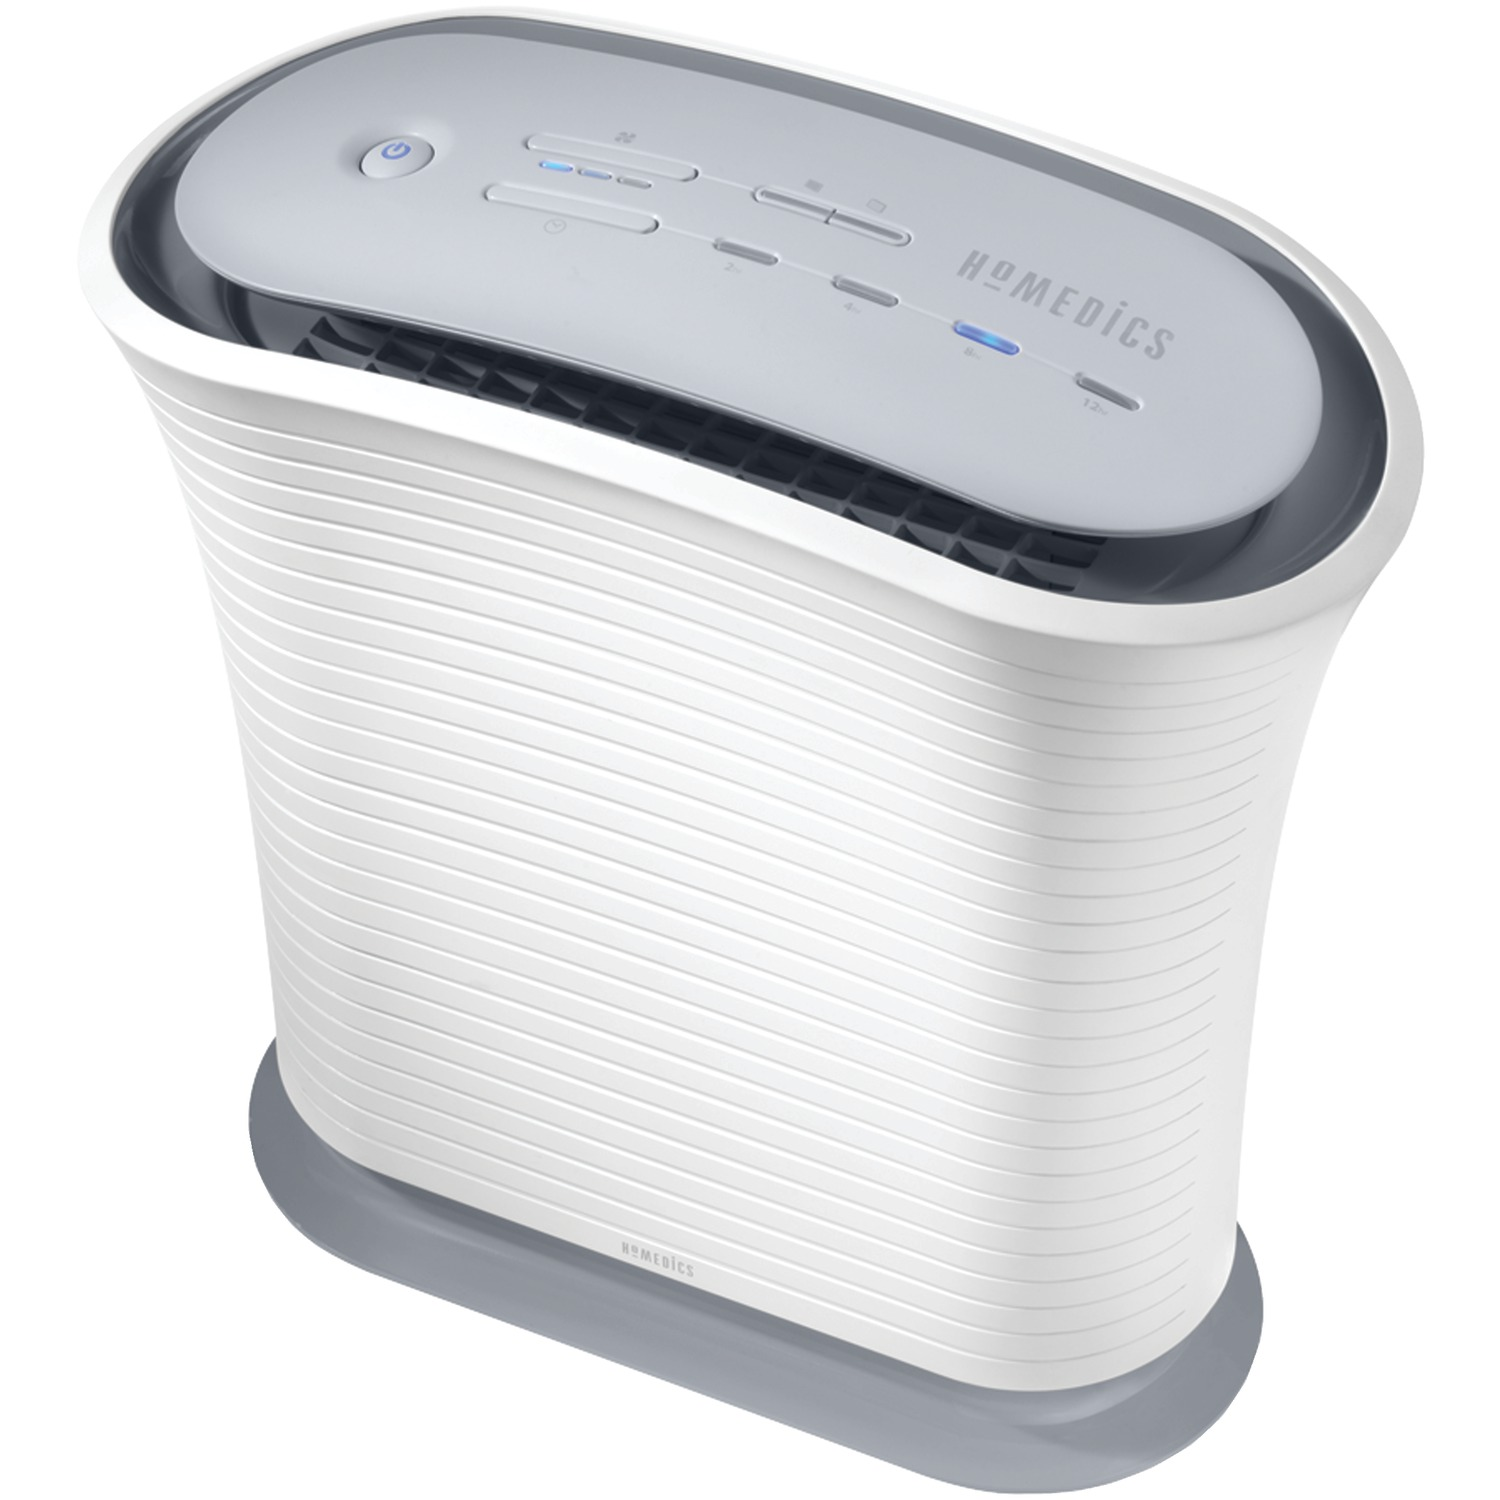 HoMedics True HEPA Air Purifier AP-25, 100CADR